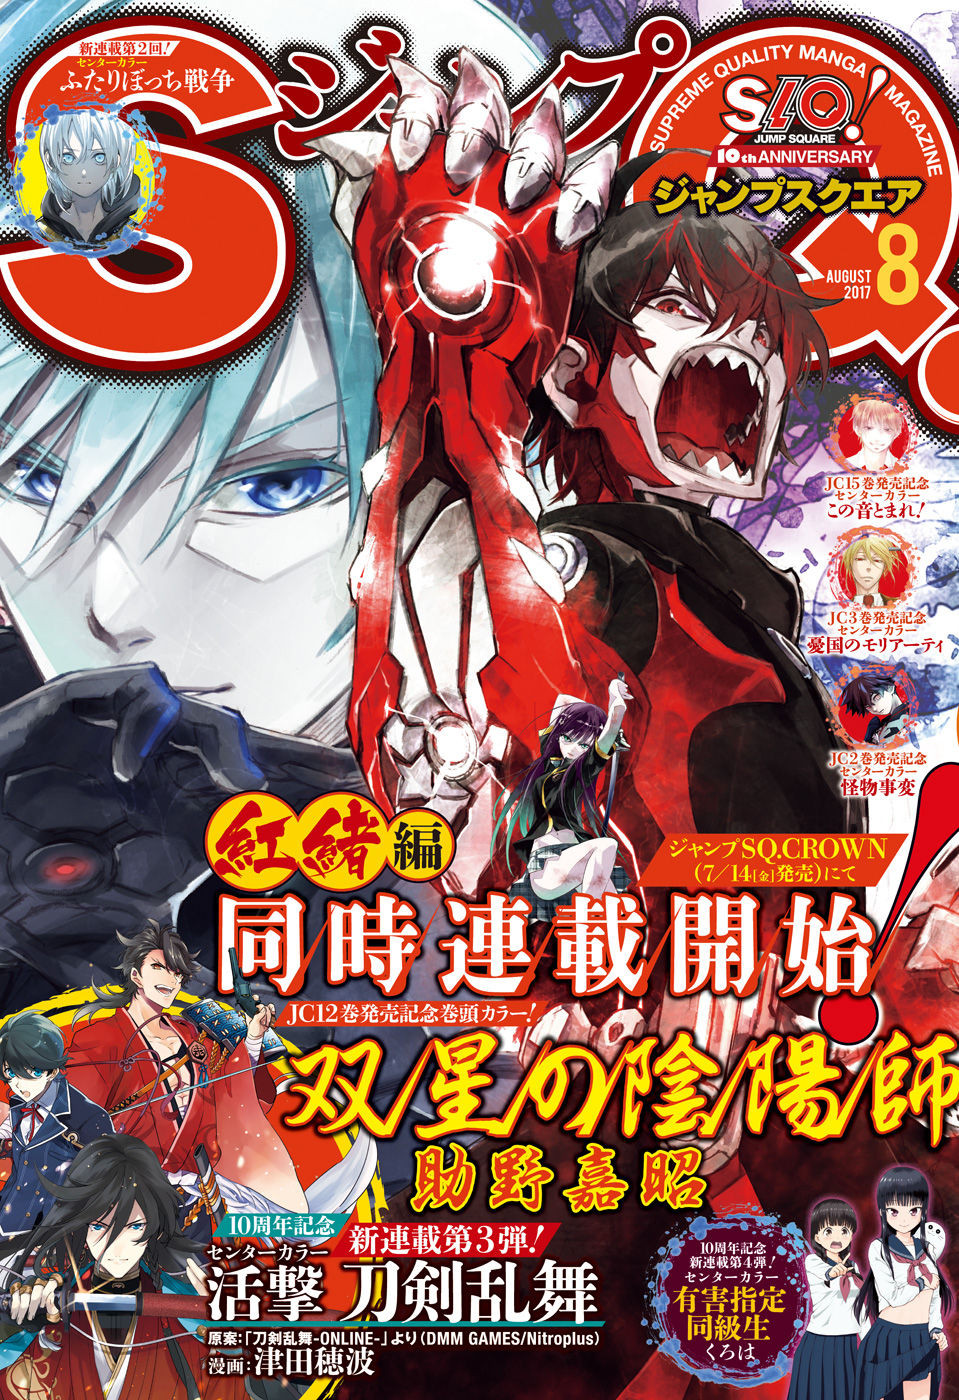 Sen Manga,Sousei-no-Onmyouji 45 raw,Loading Sousei-no-Onmyouji | Chapter  45 | Page 1 .....